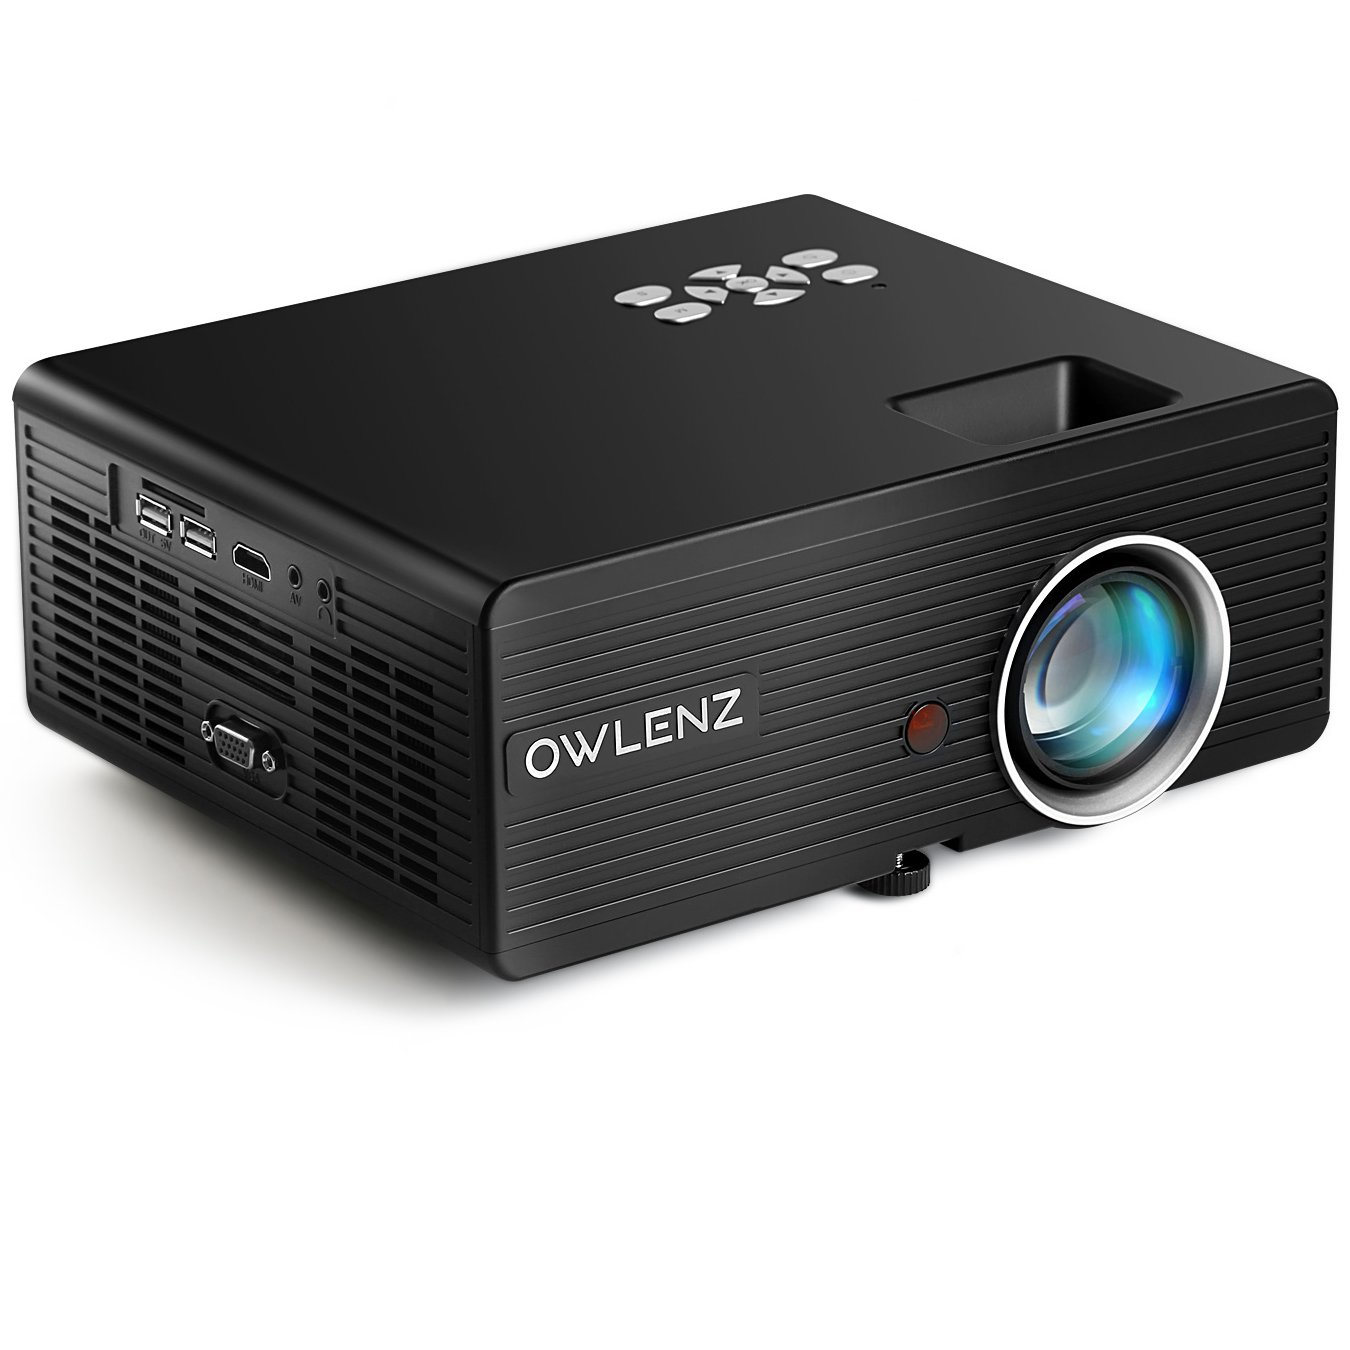 Owlenz 2300 Lumens LCD Mini Projector, Multimedia Home Theater Video Projector Support 1080P HDMI USB SD Card VGA AV Home Cinema TV Laptop Game iPhone